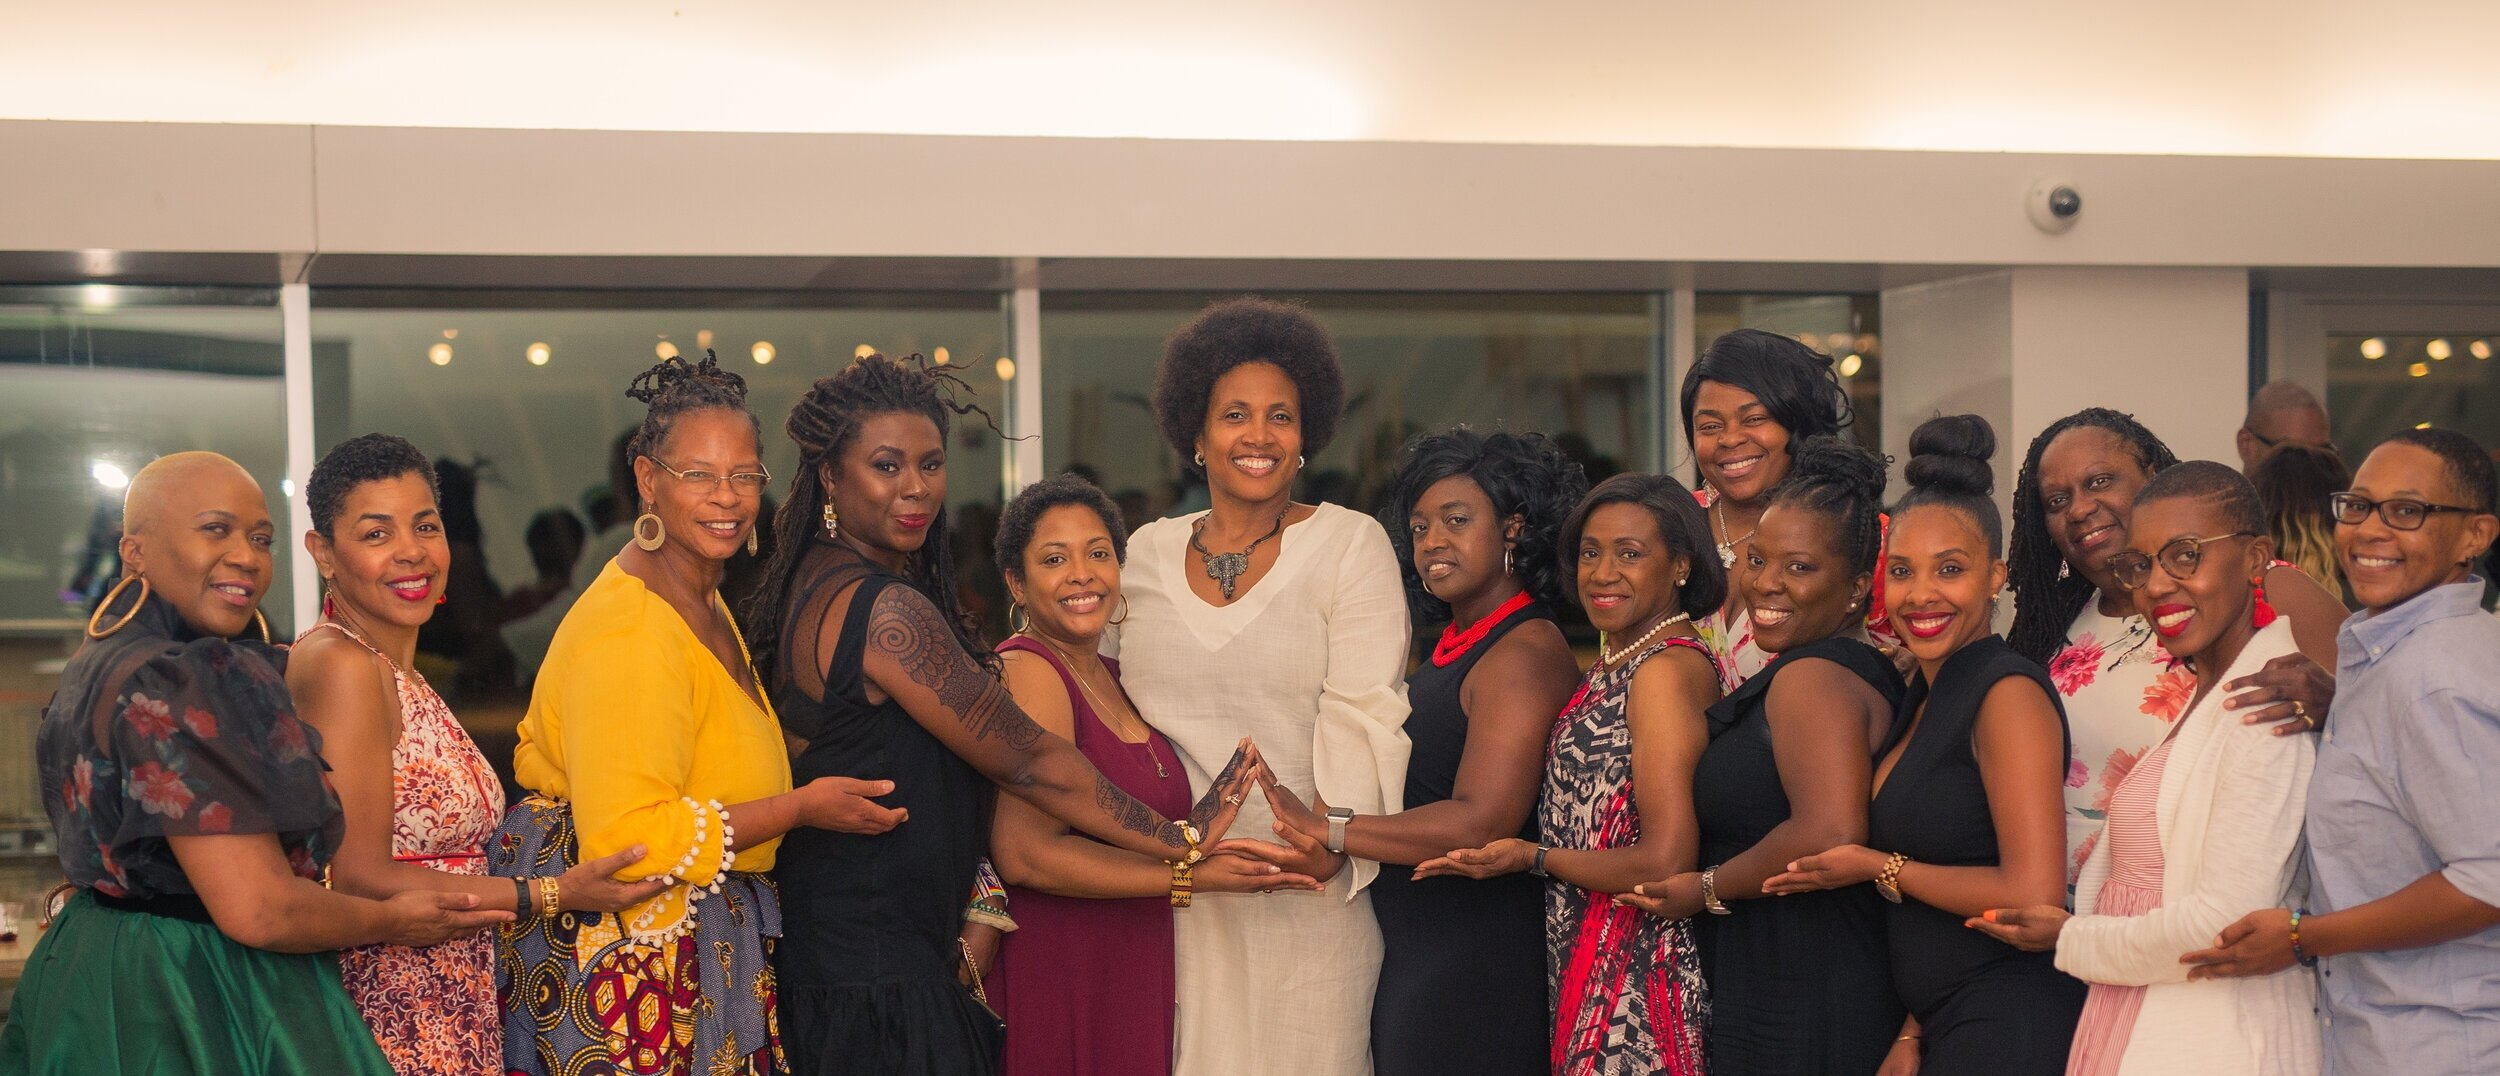 Darlene Williams and her Sorors of Delta Sigma Theta Sorority, Inc. during her Upscale Power Broker Soiree that was held at the Brooklyn Children's Museum  Photo Credit: OJM Photos